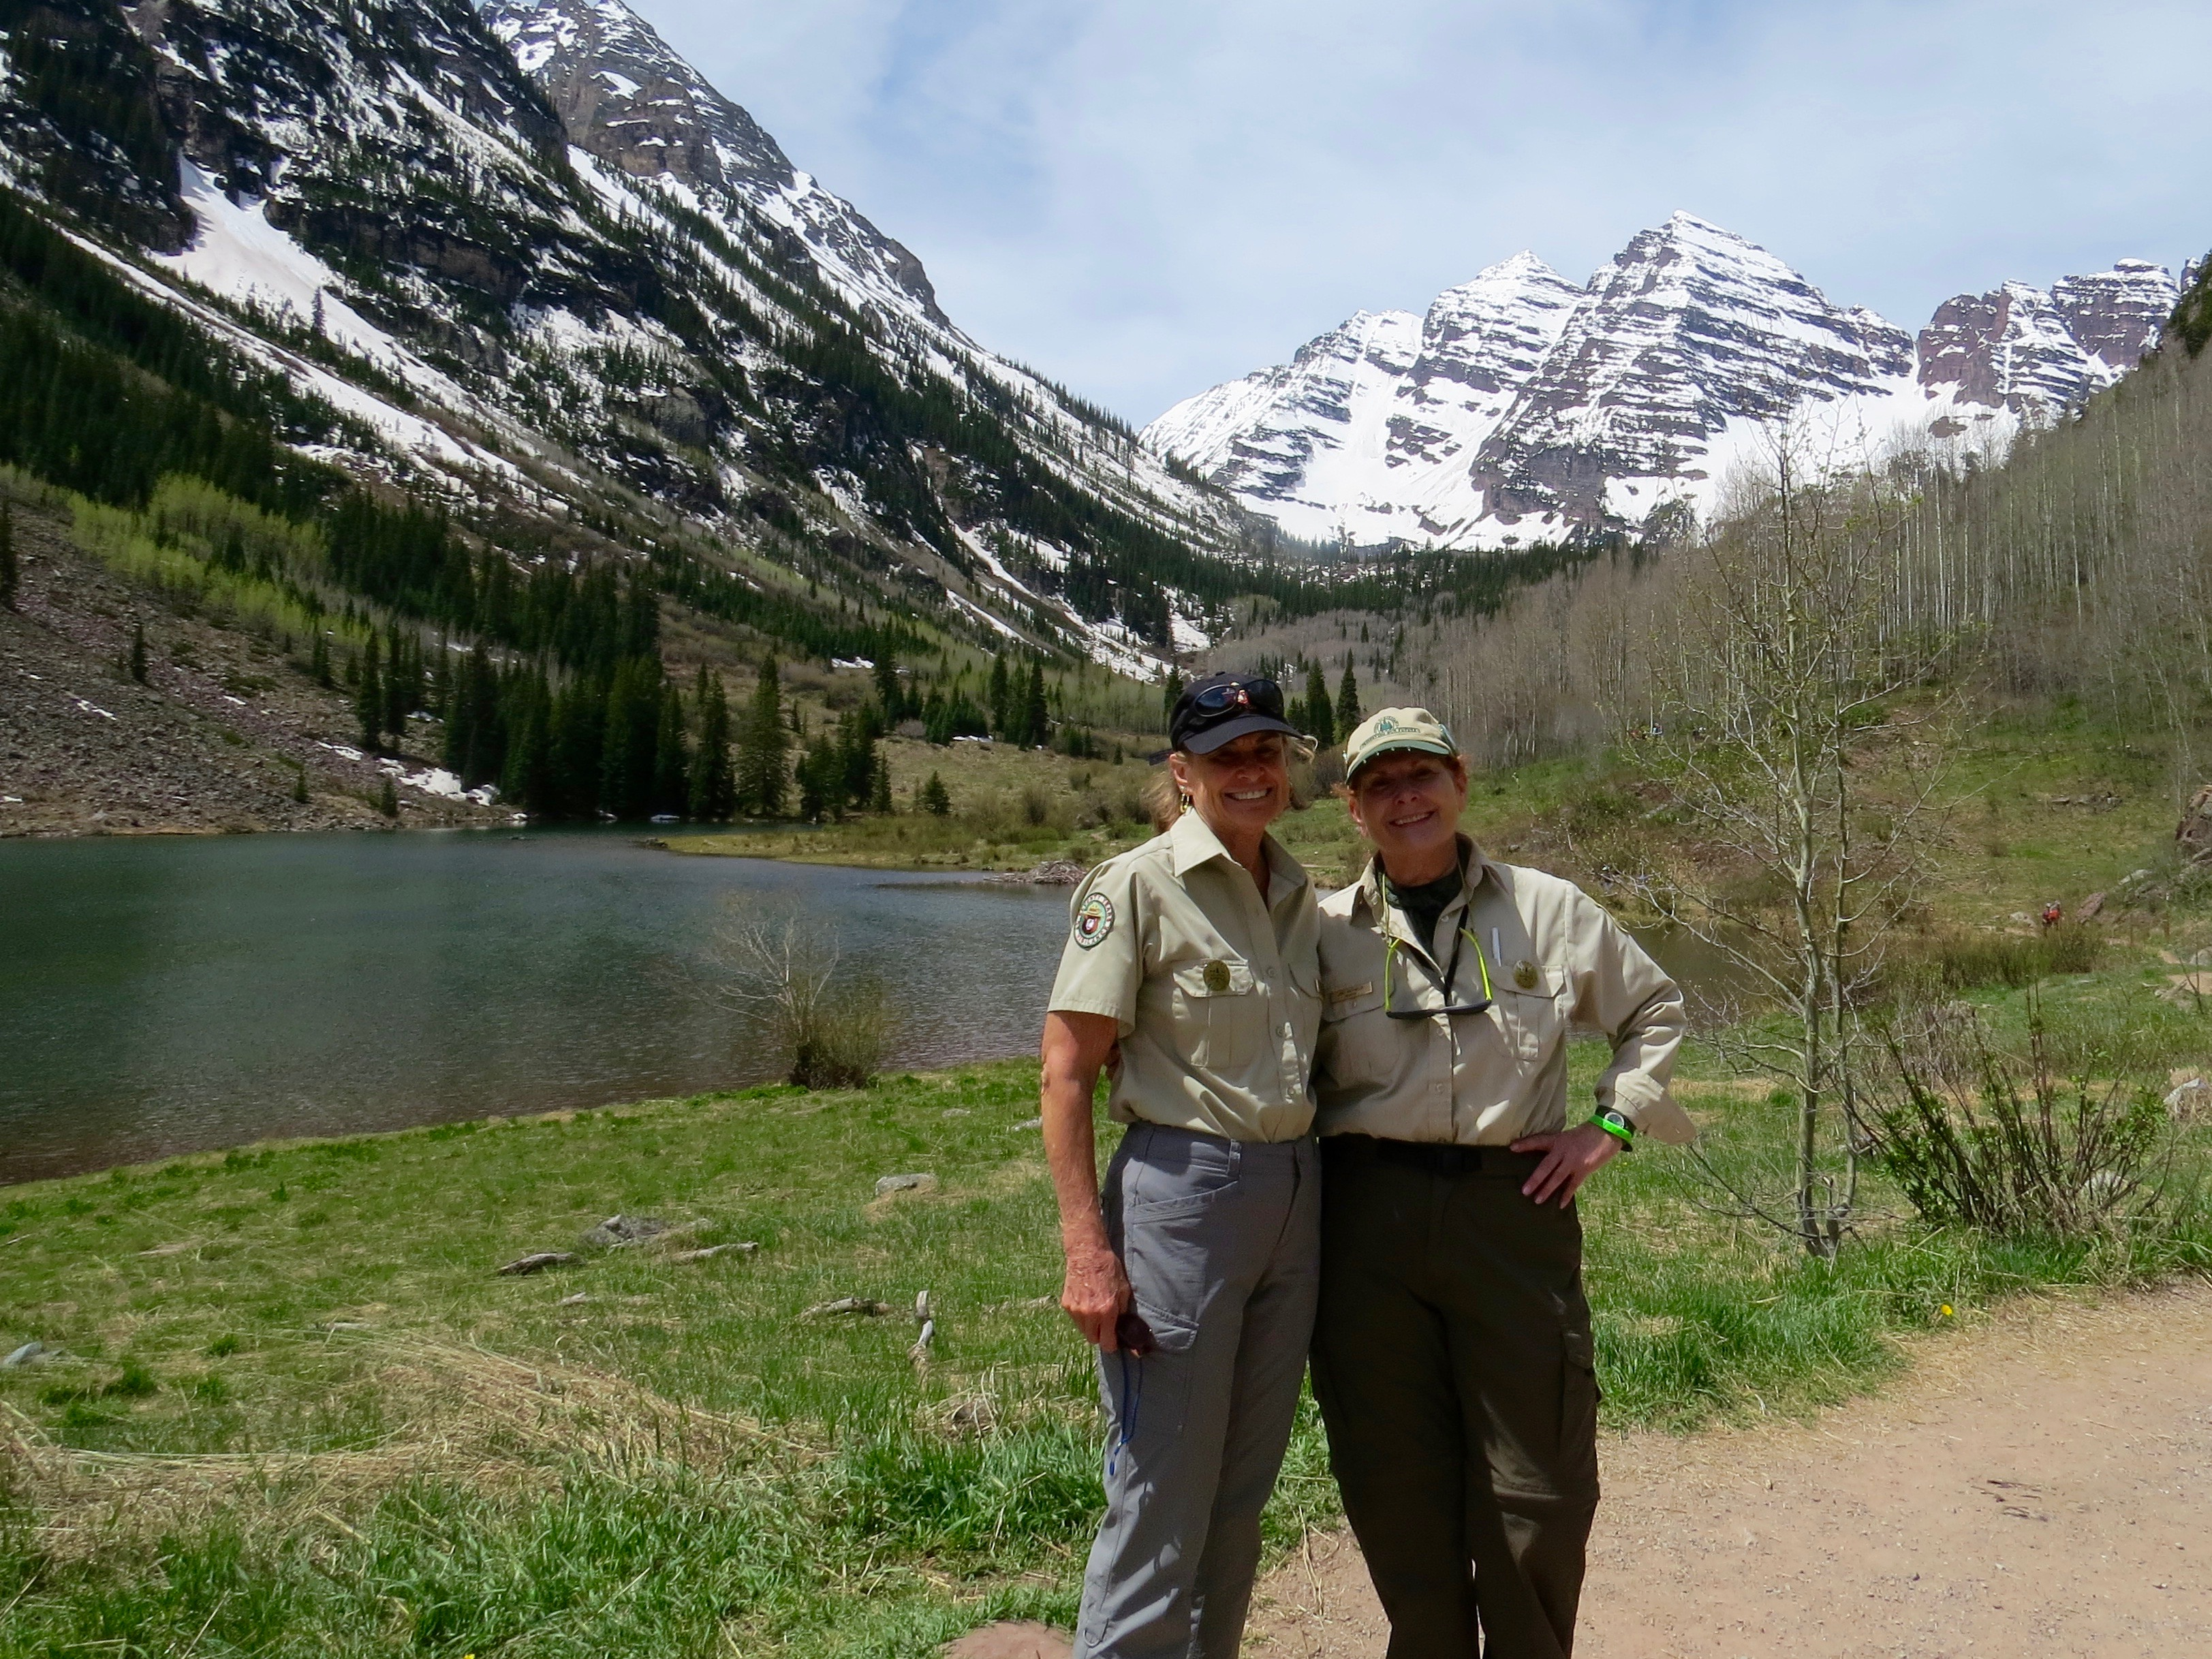 My first-of-the-season patrol at the Maroon Bells with friend Jane Batagglia. We never take the grandeur of the Bells for granted.